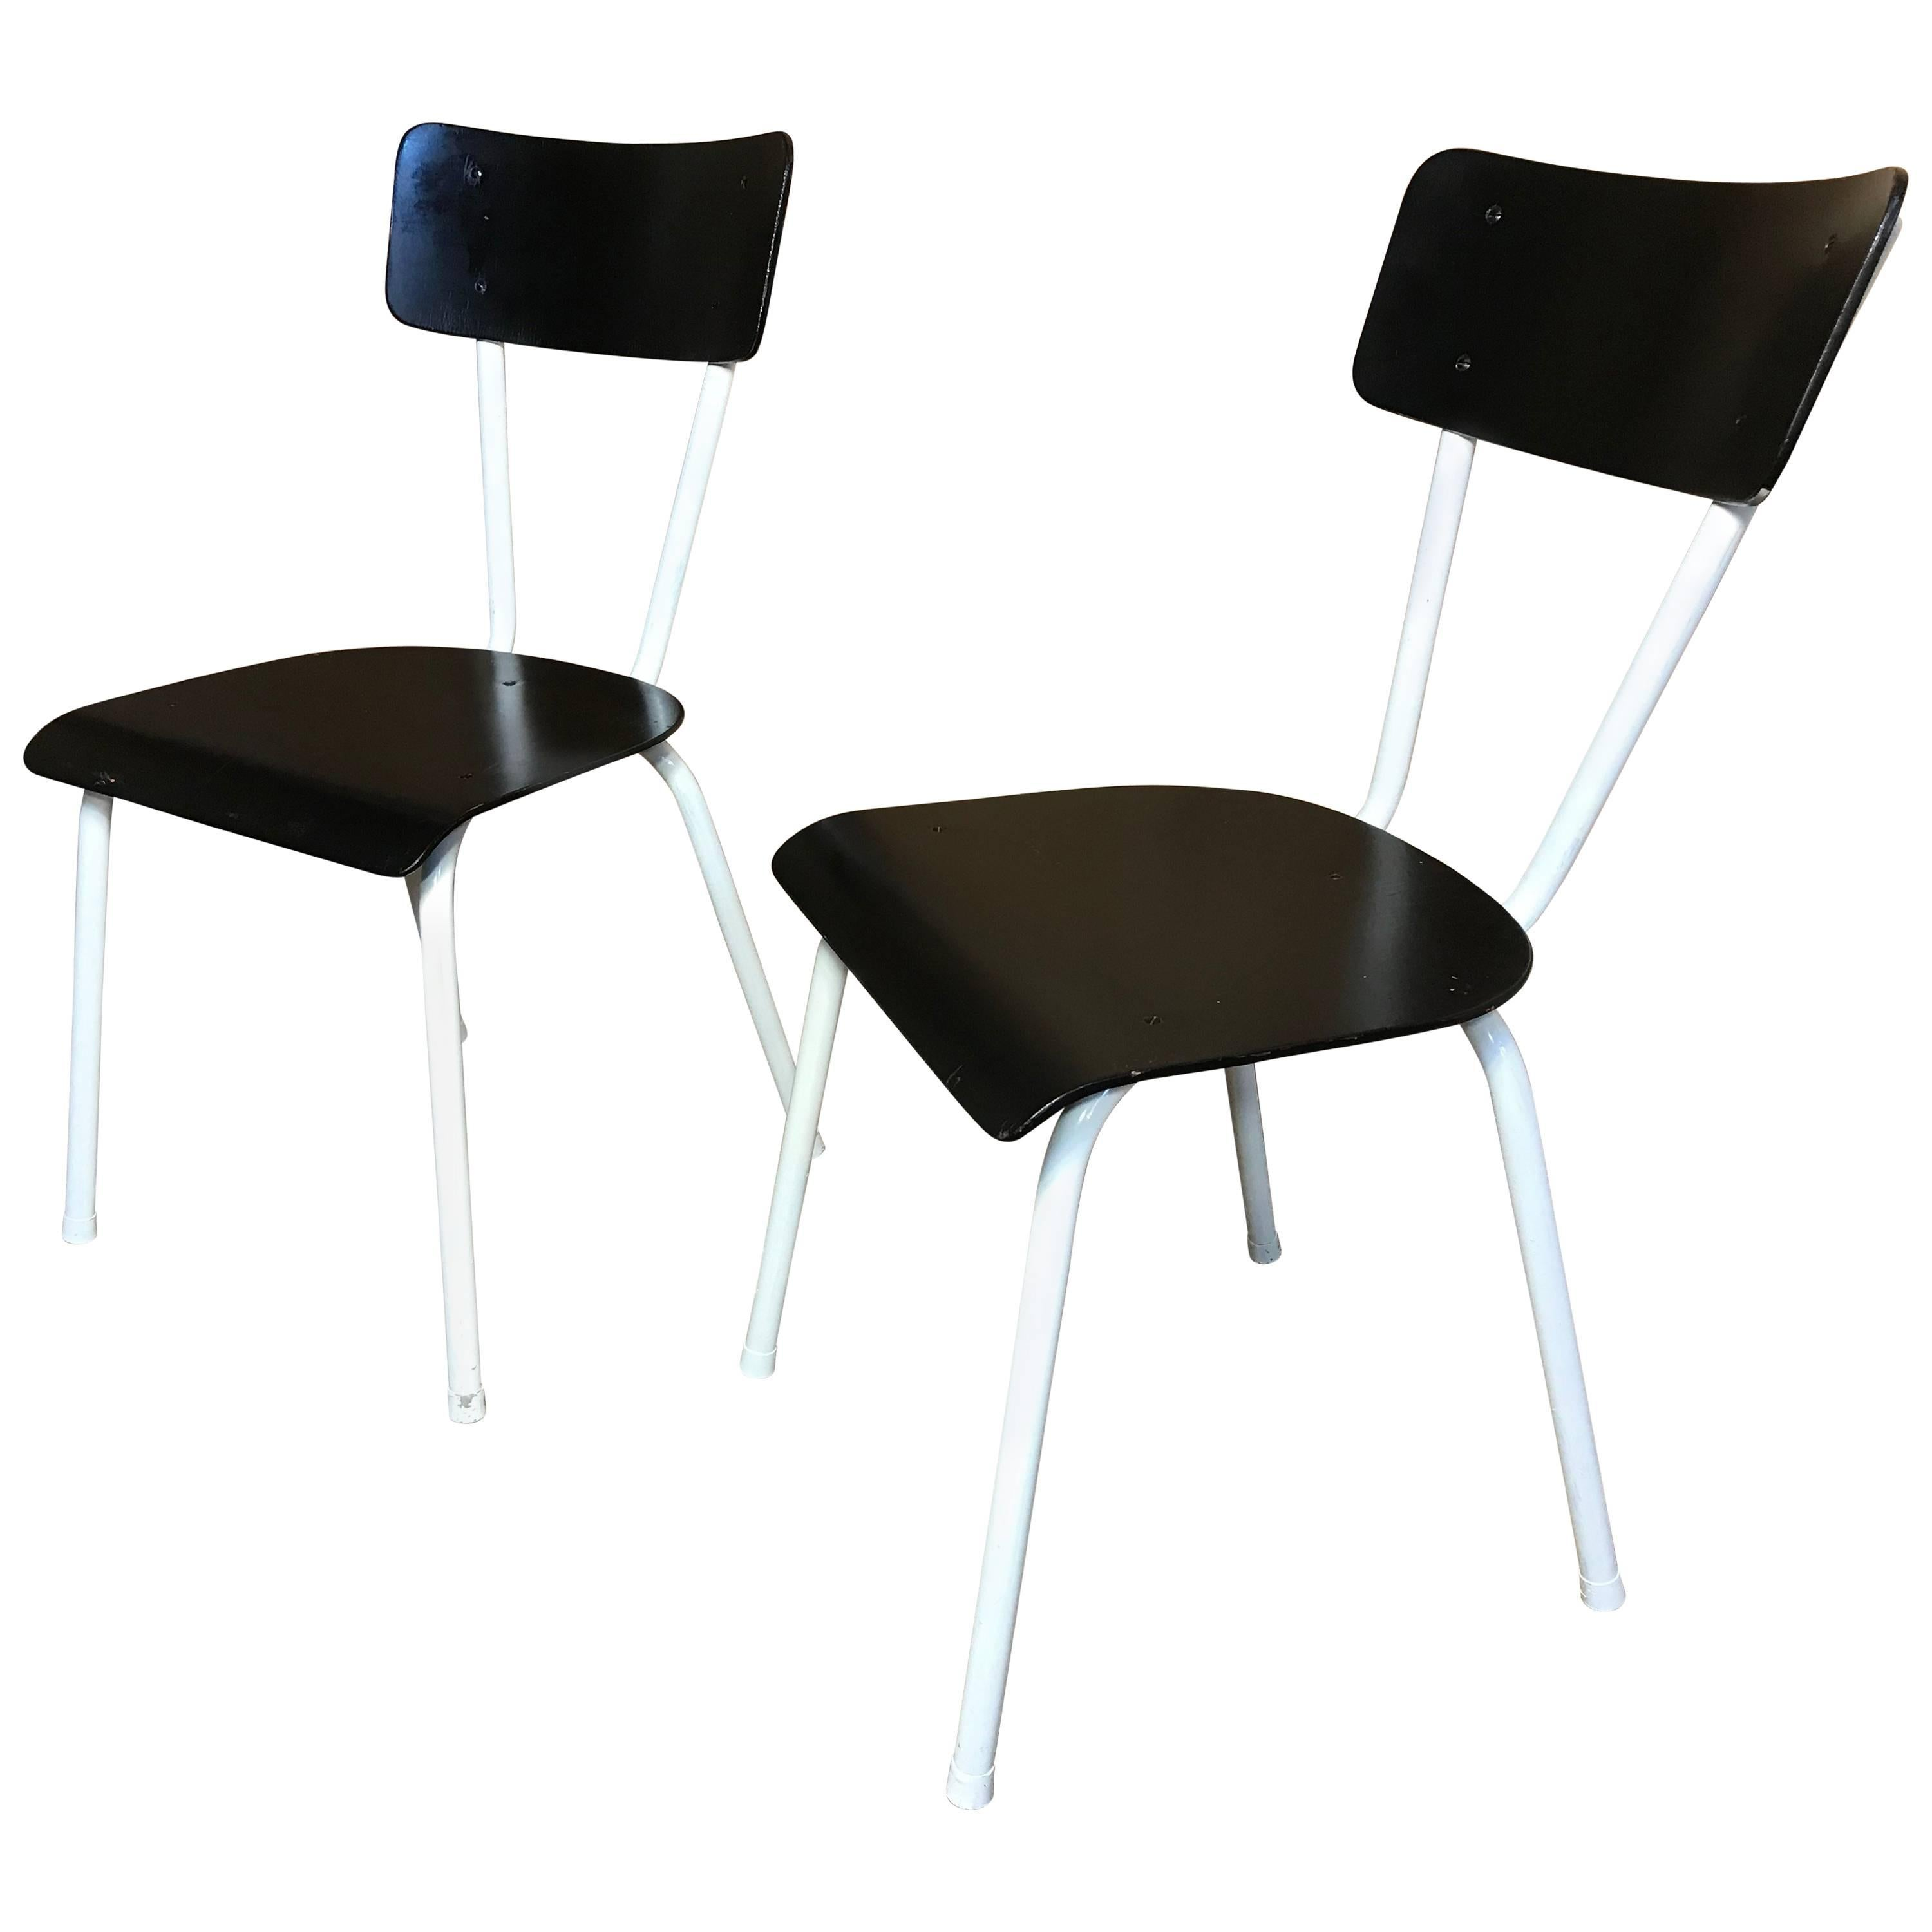 Genial 1950s Vintage Retro Black And White Chairs